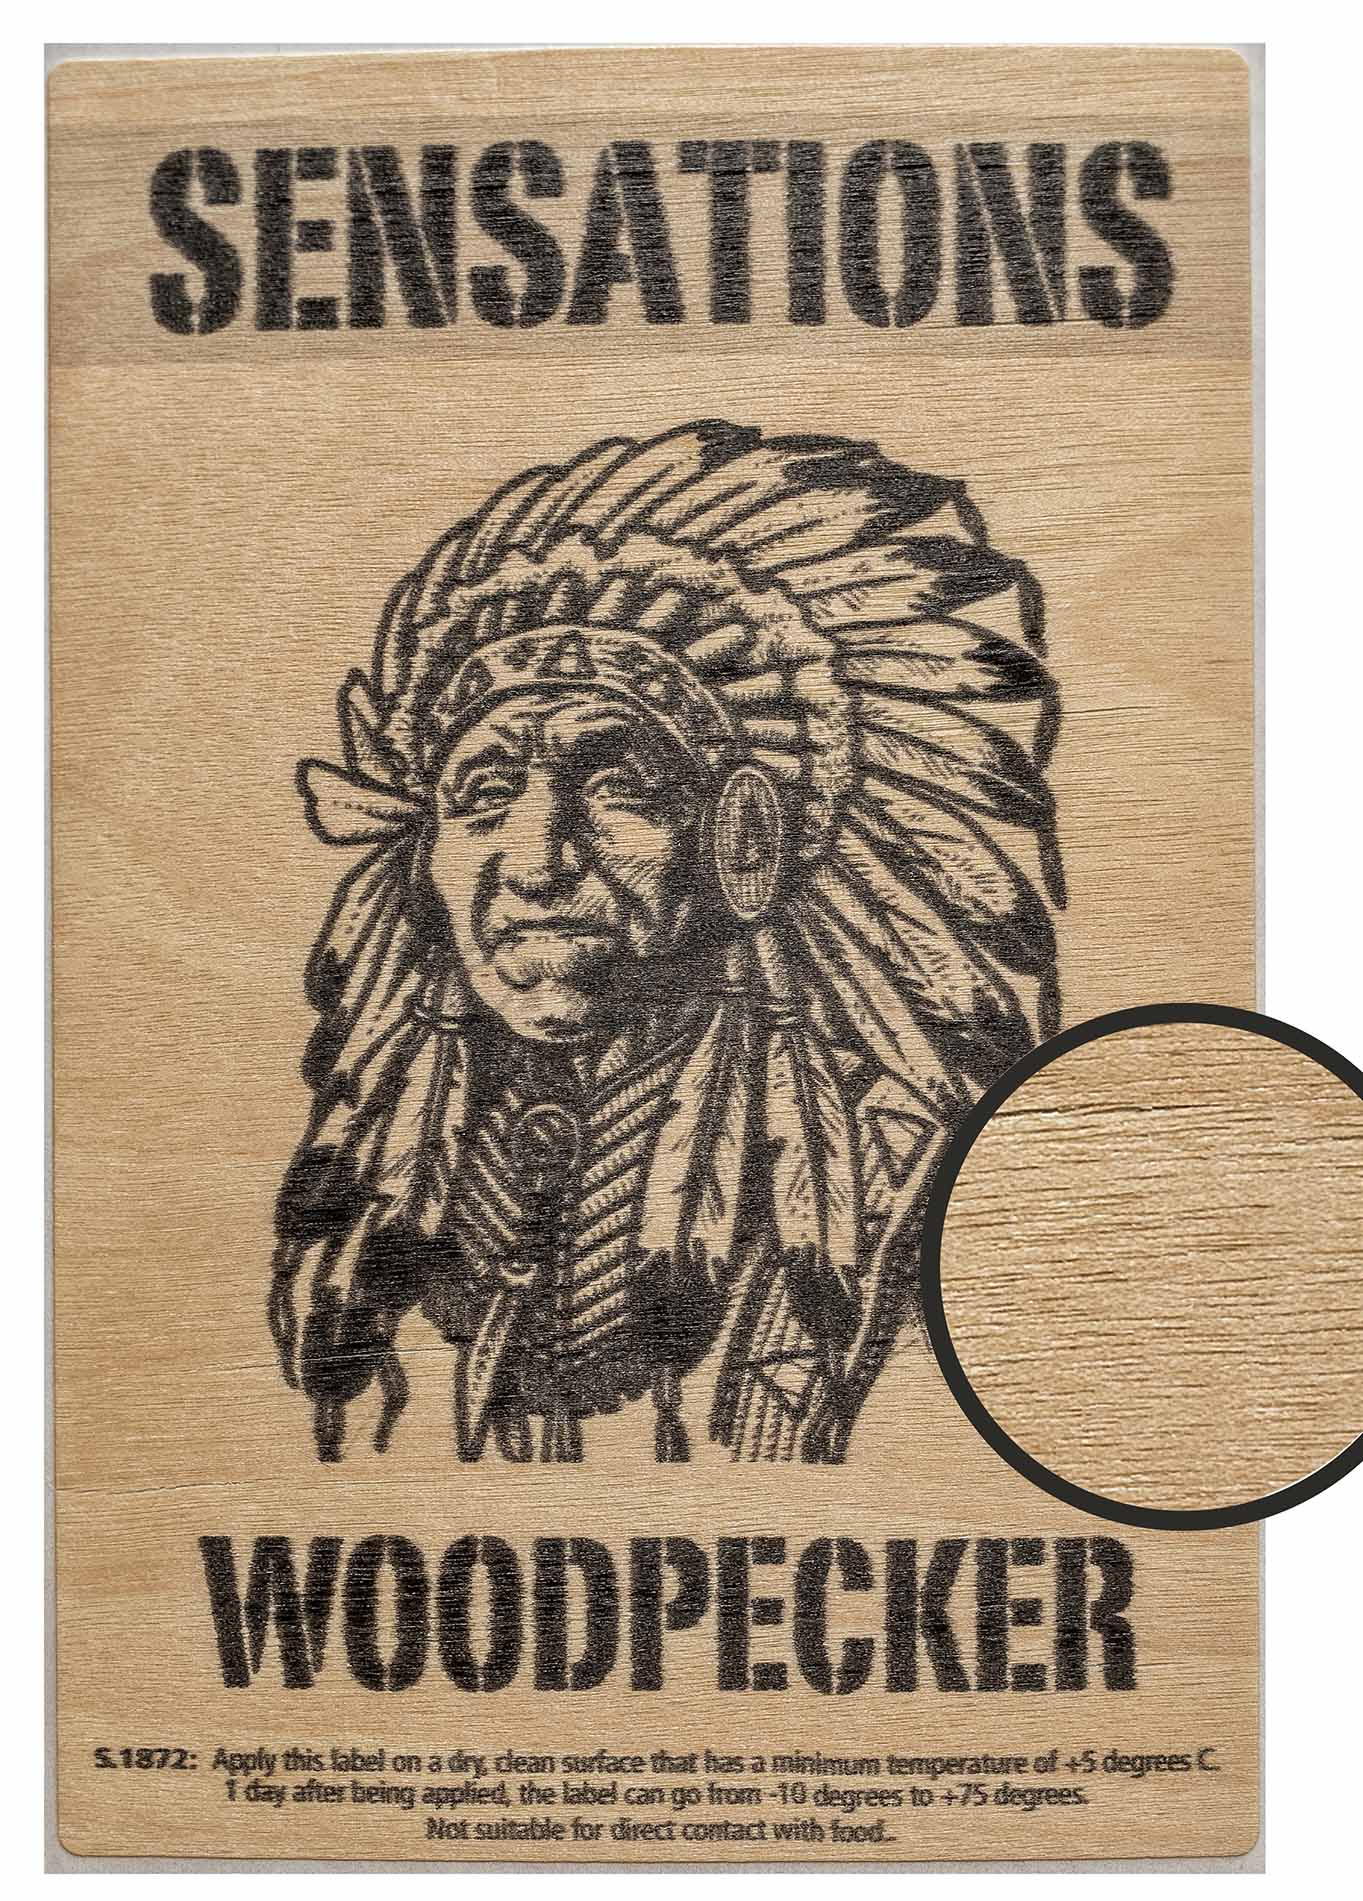 Label Sensations woodpecker